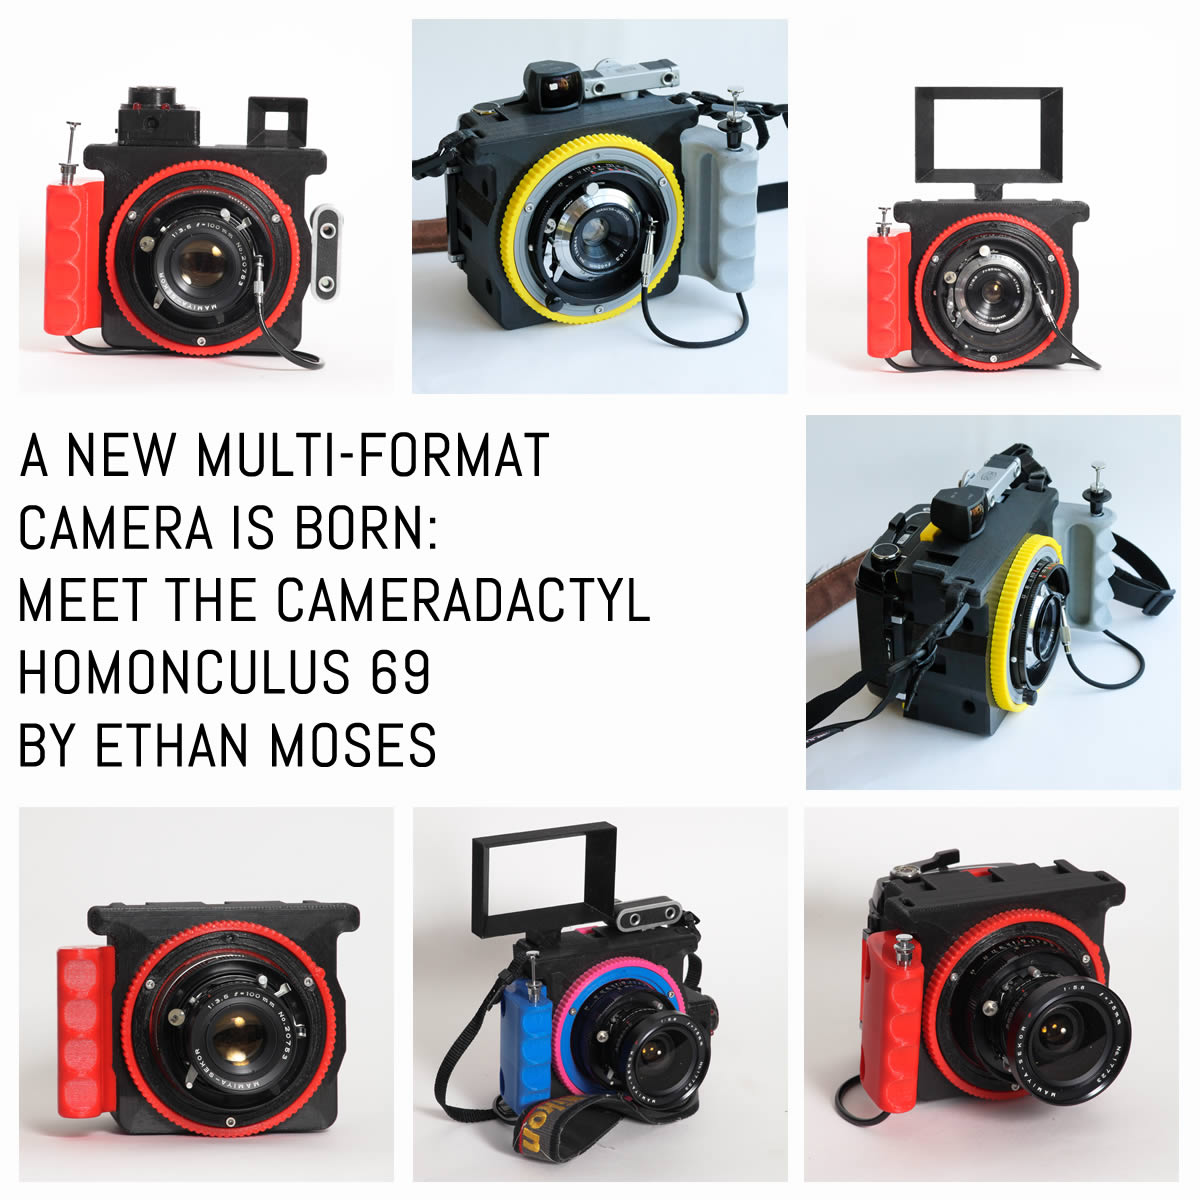 The CAMERADACTYL OG 4x5 hand camera - lightweight large format photography for all